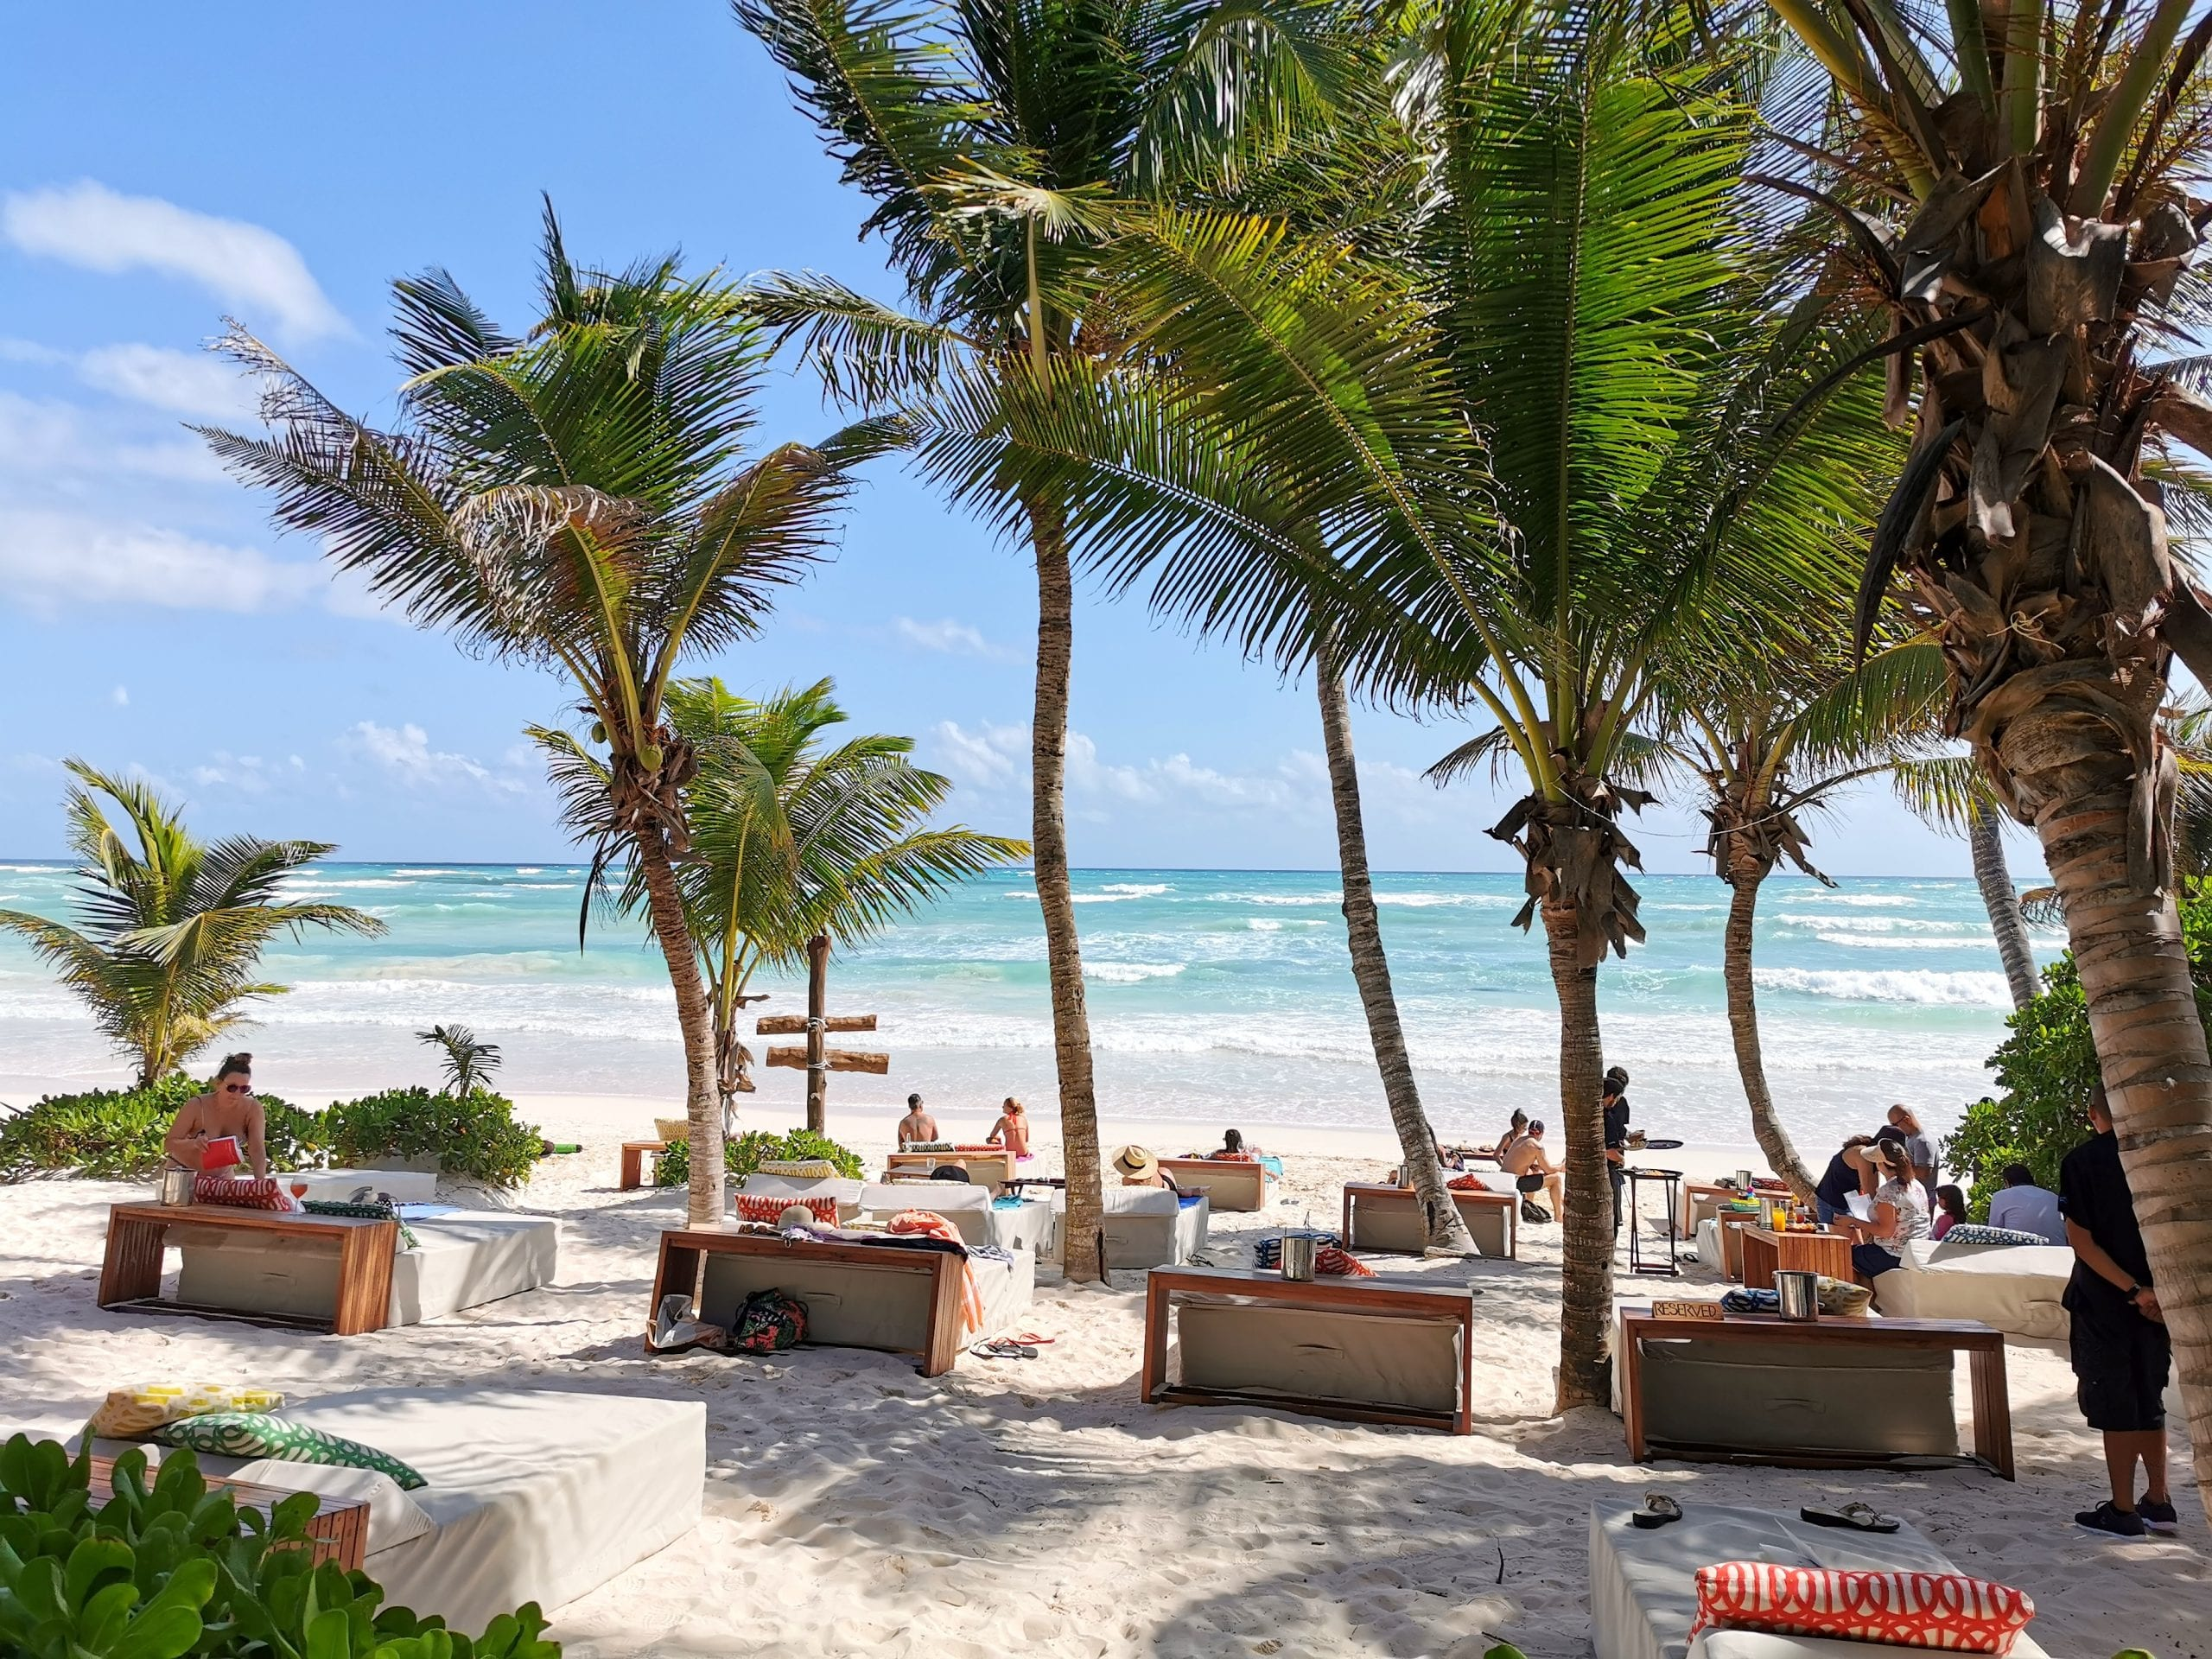 Yucatan Rundreise Highlights Tulum